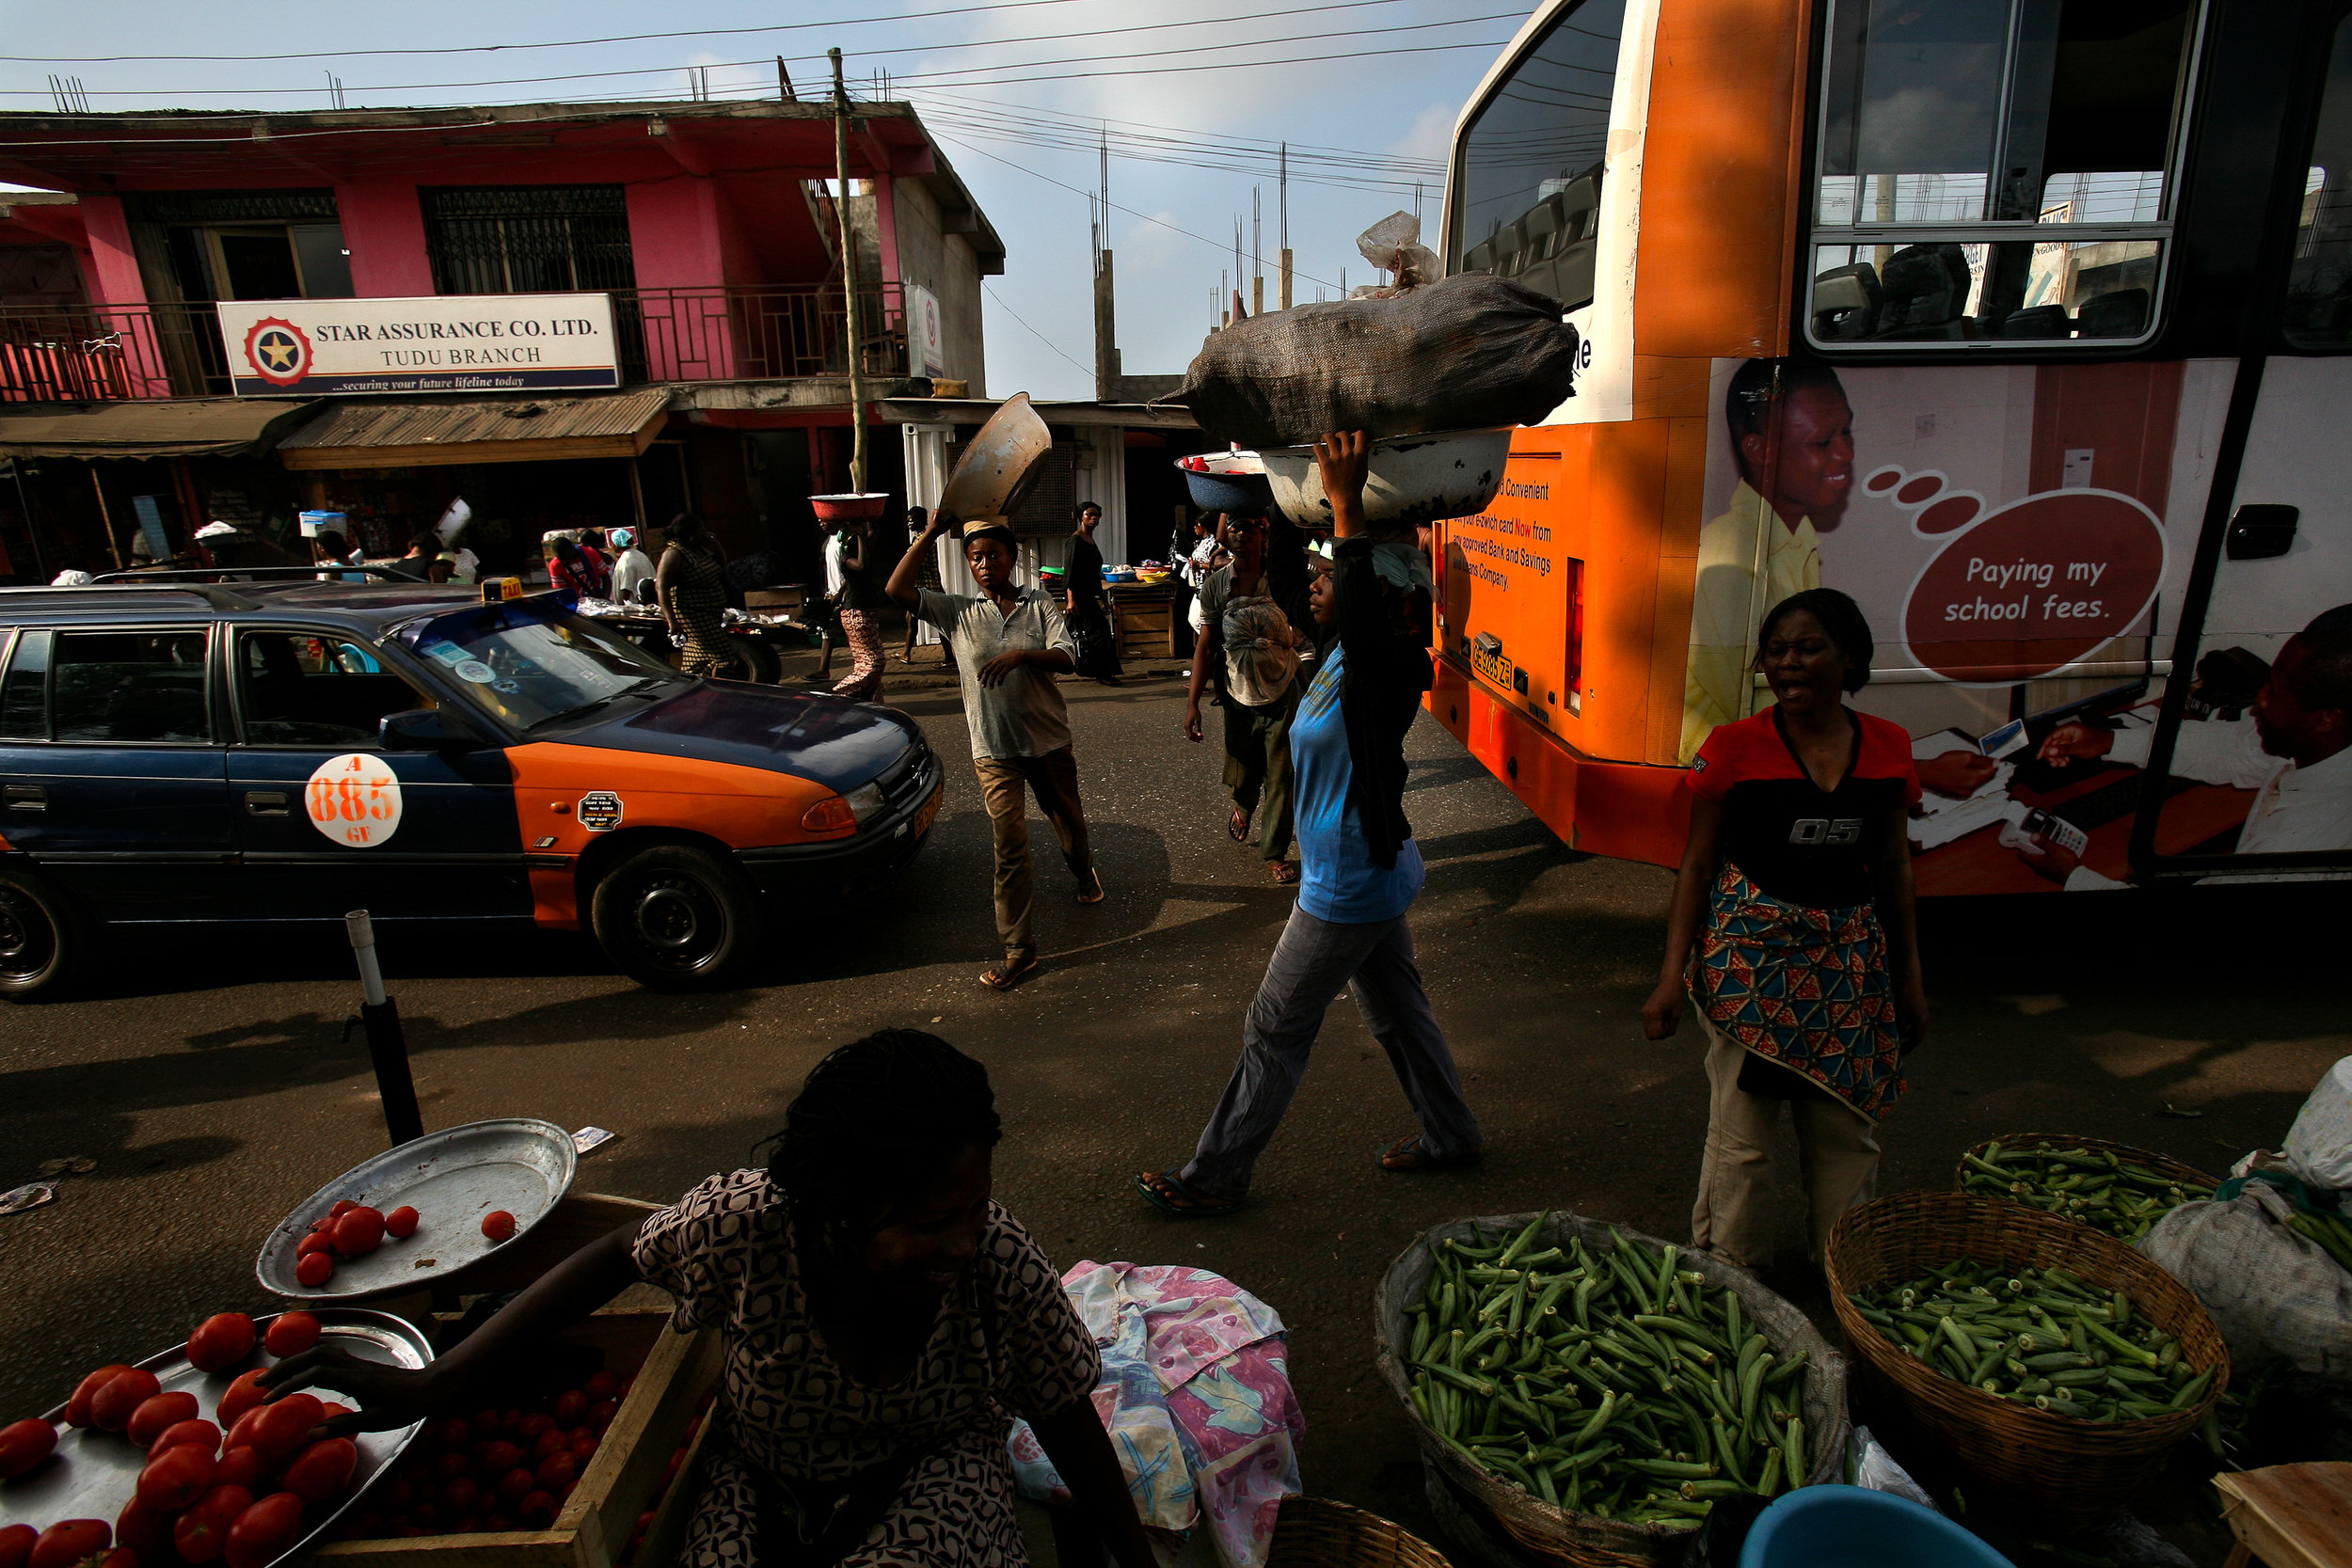 25-year-old Lamisi, center, carries a load of yams from one market to another in Accra, Ghana on Feb. 11, 2009. Lamisi graduated from Senior Secondary School in Tumu, her home in Ghana's remote Upper West Region, but had to travel to the faraway city to make money. She is hoping to save enough to pay for admission to training college for teaching or nursing.